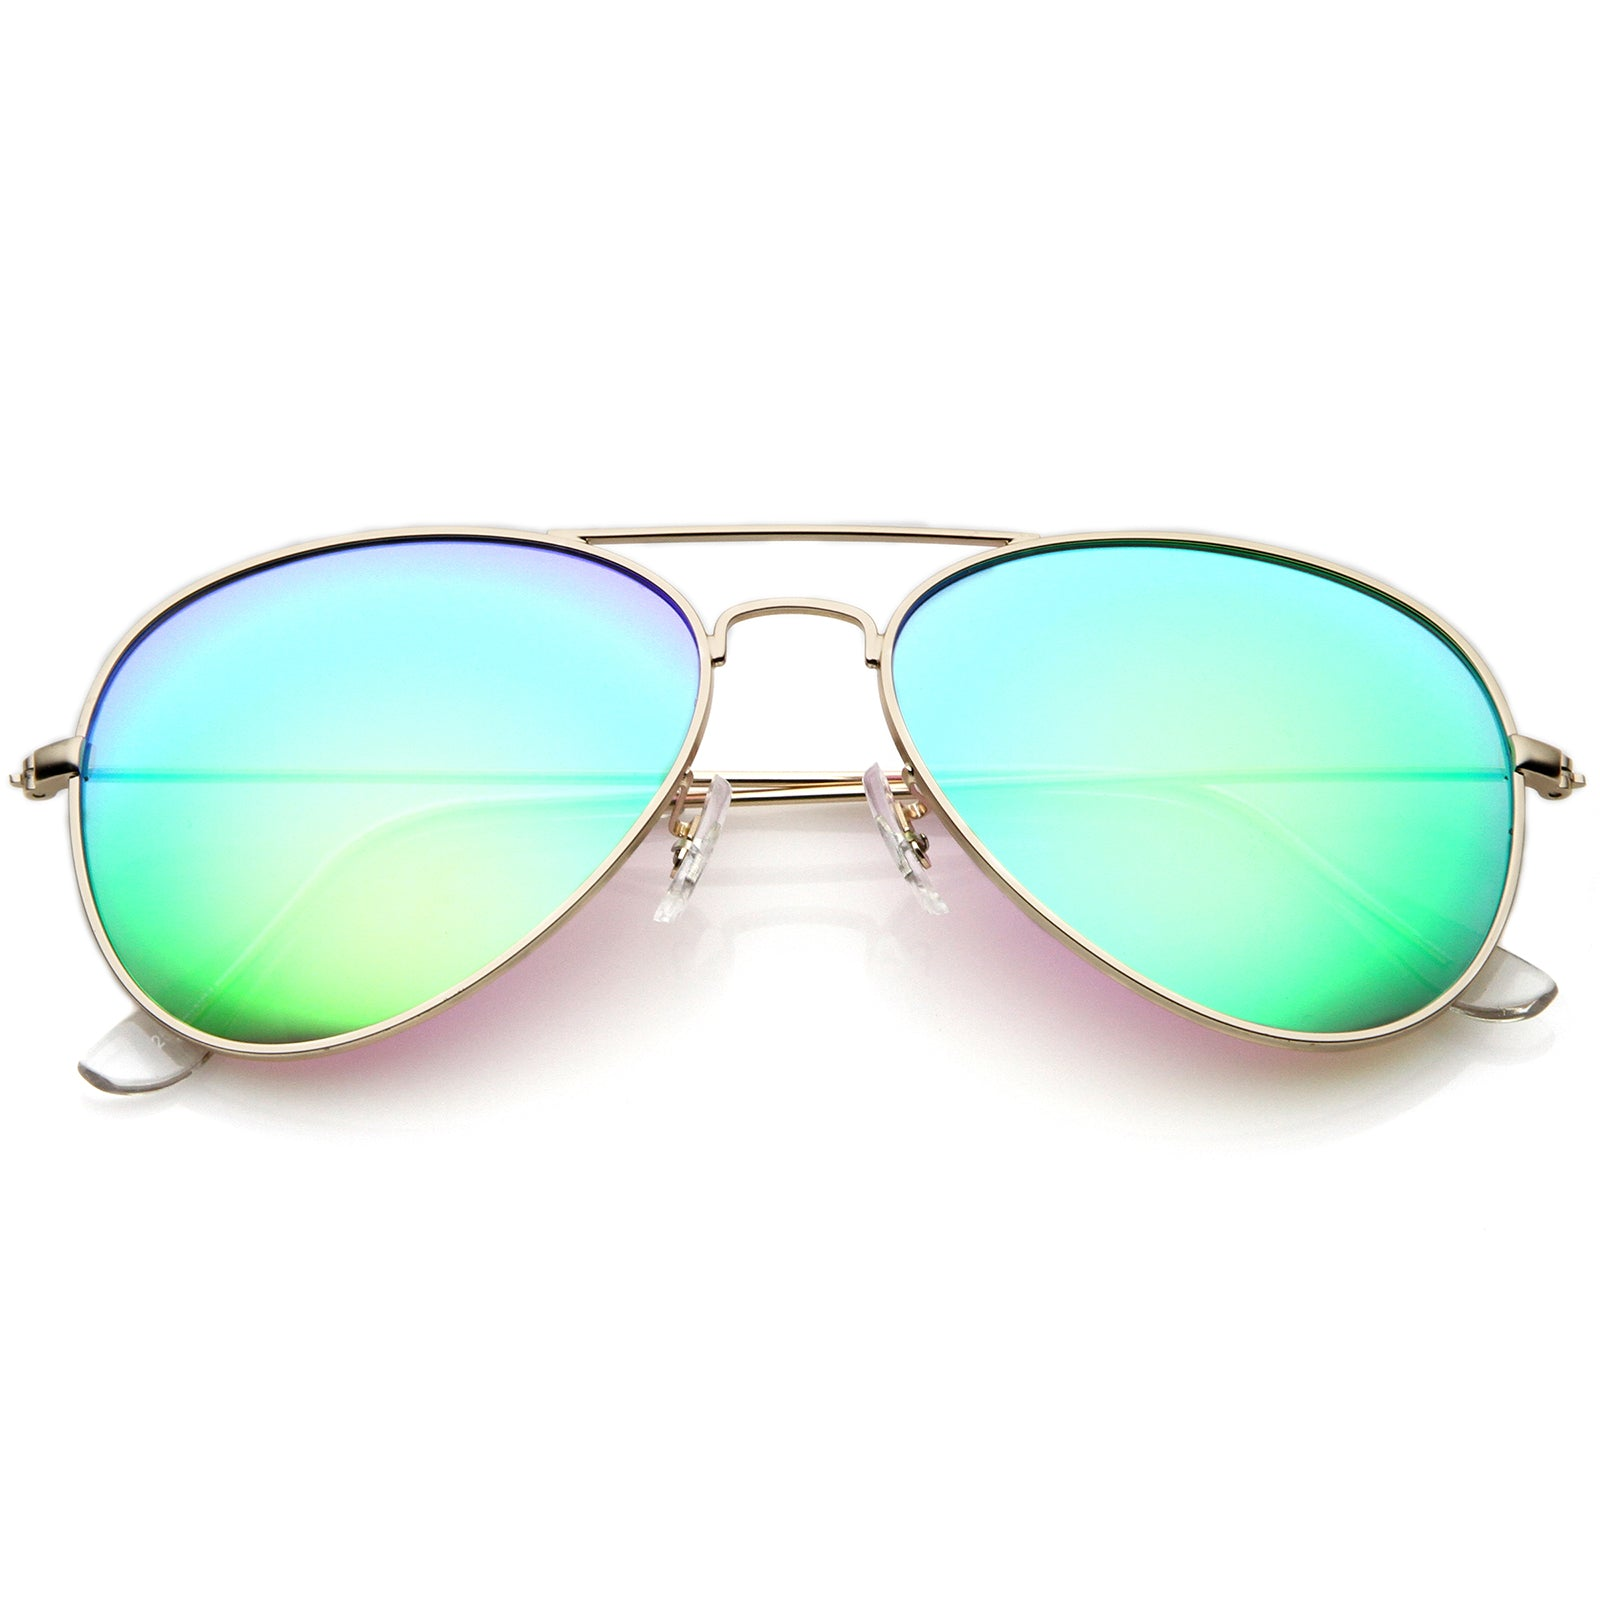 Premium Nickel Plated Frame Multi-Coated Mirror Lens Aviator Sunglasses 59mm - sunglass.la - 9